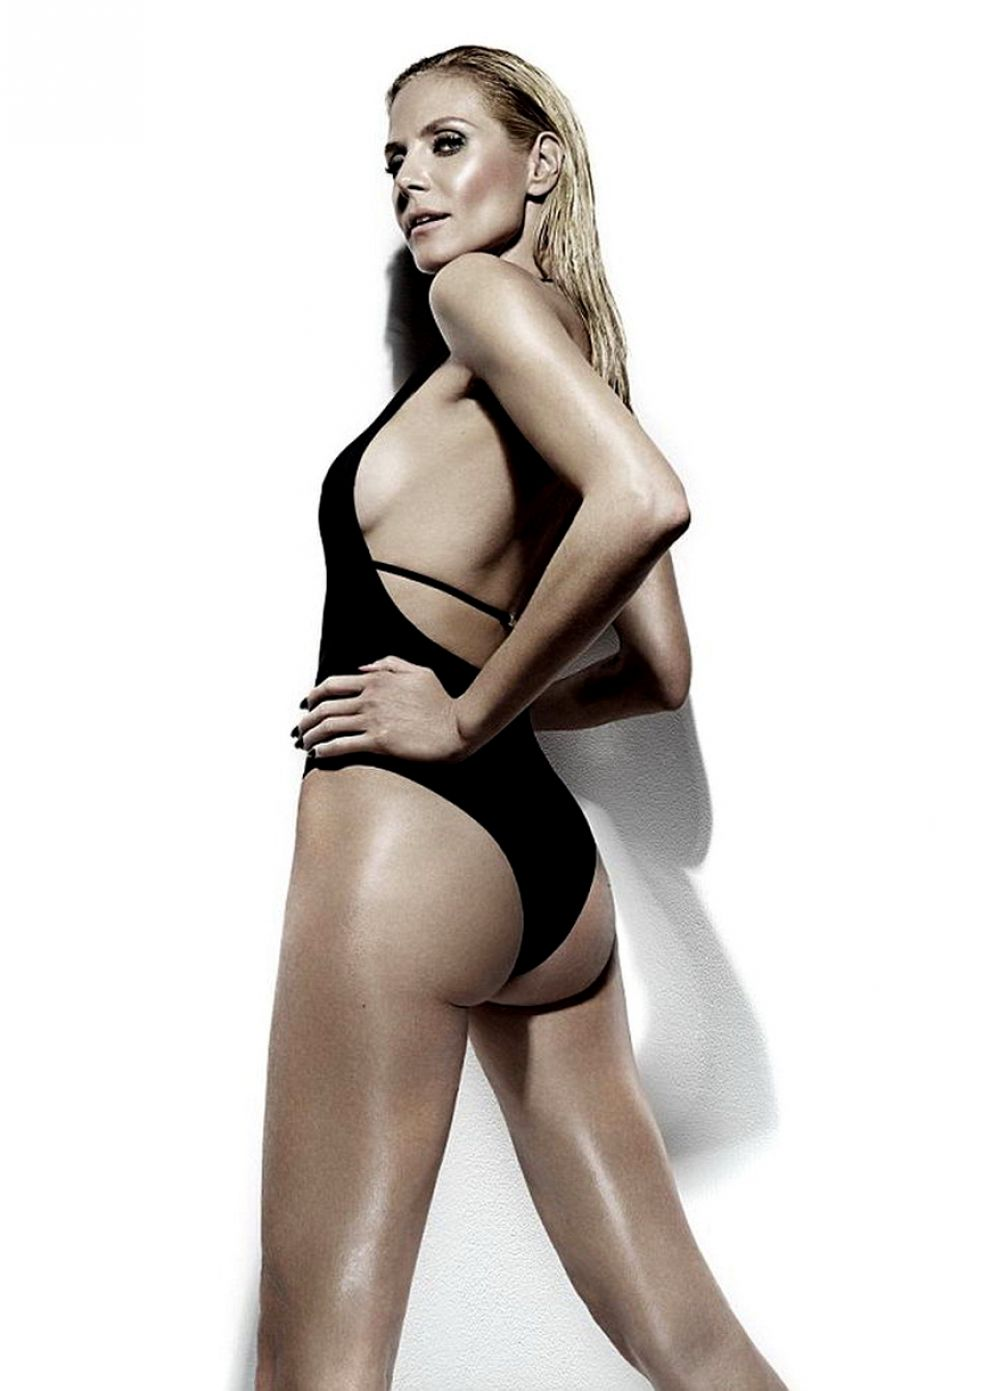 Heidi Klum Launching Her Swimwear Line With New Zealand Based Bendon January 2016